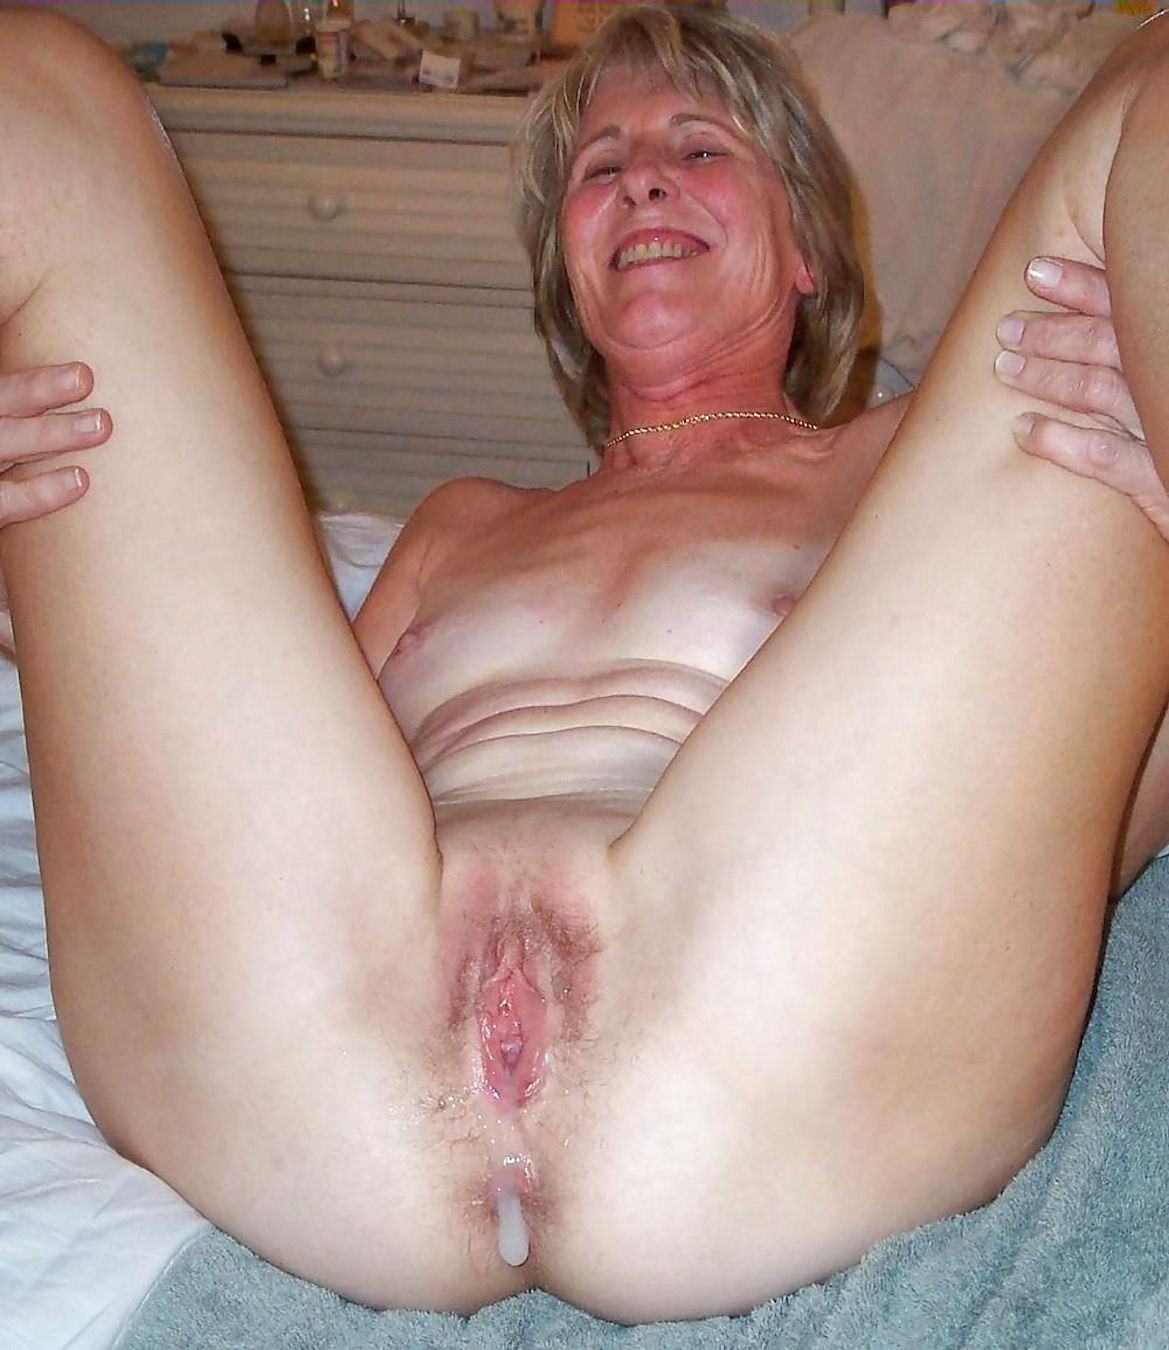 Old Lady Creampie Porn cum collection | motherless ™